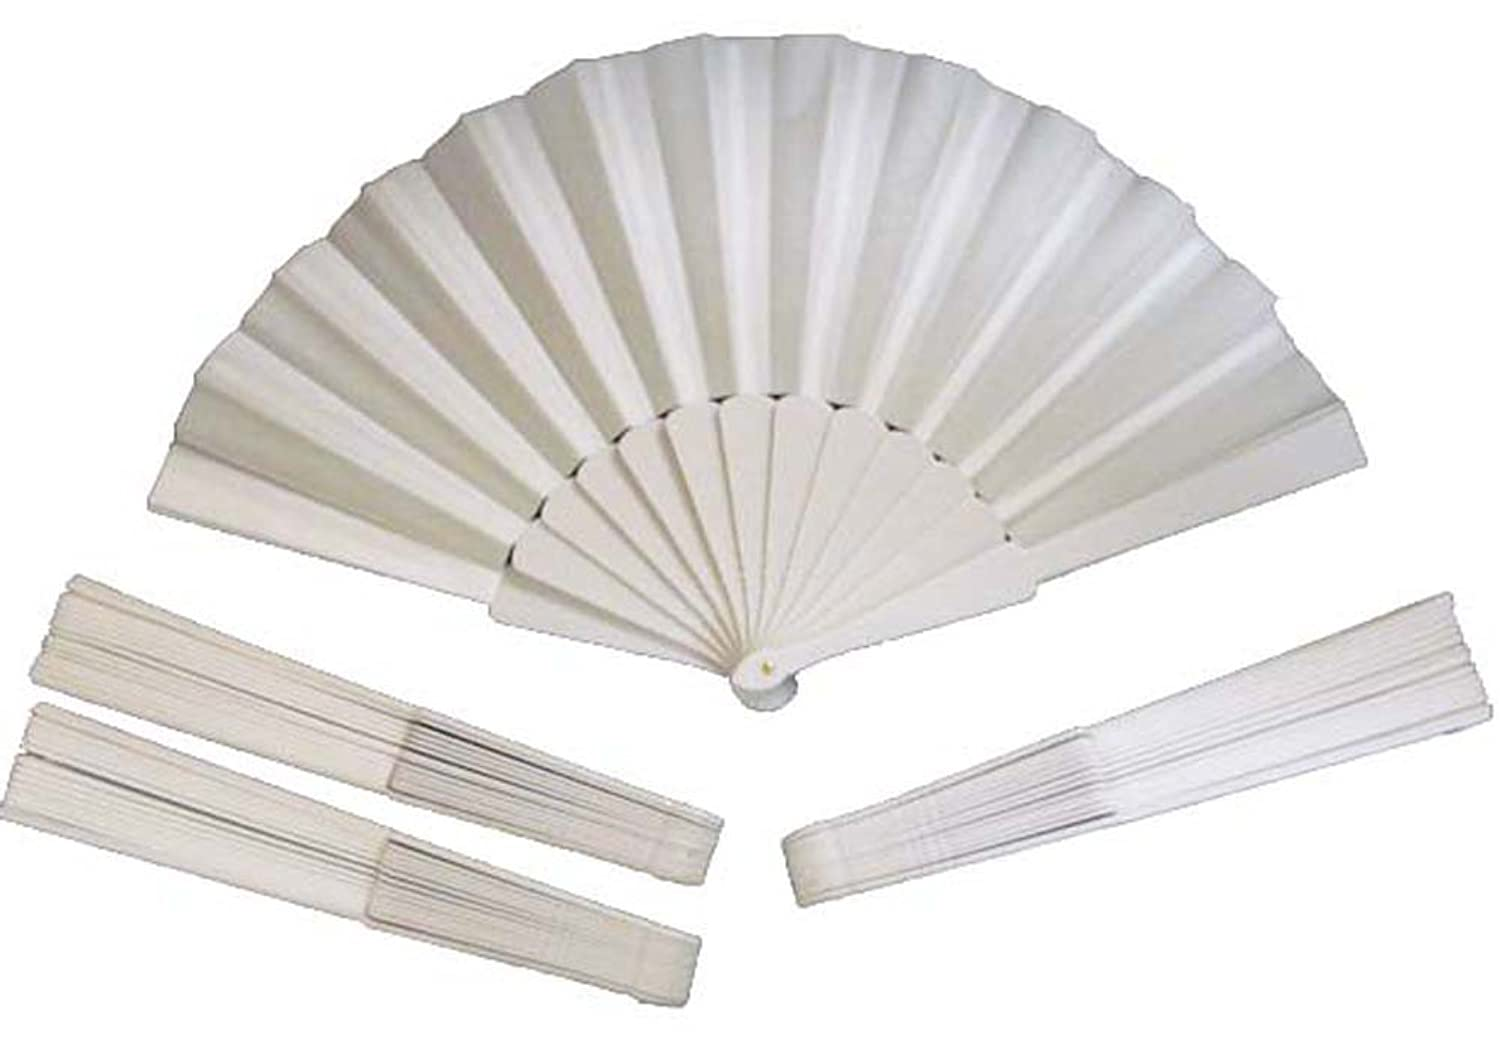 Amazon.com: White Cloth Folding Fans for Dance or Purse, pack of 4 ...